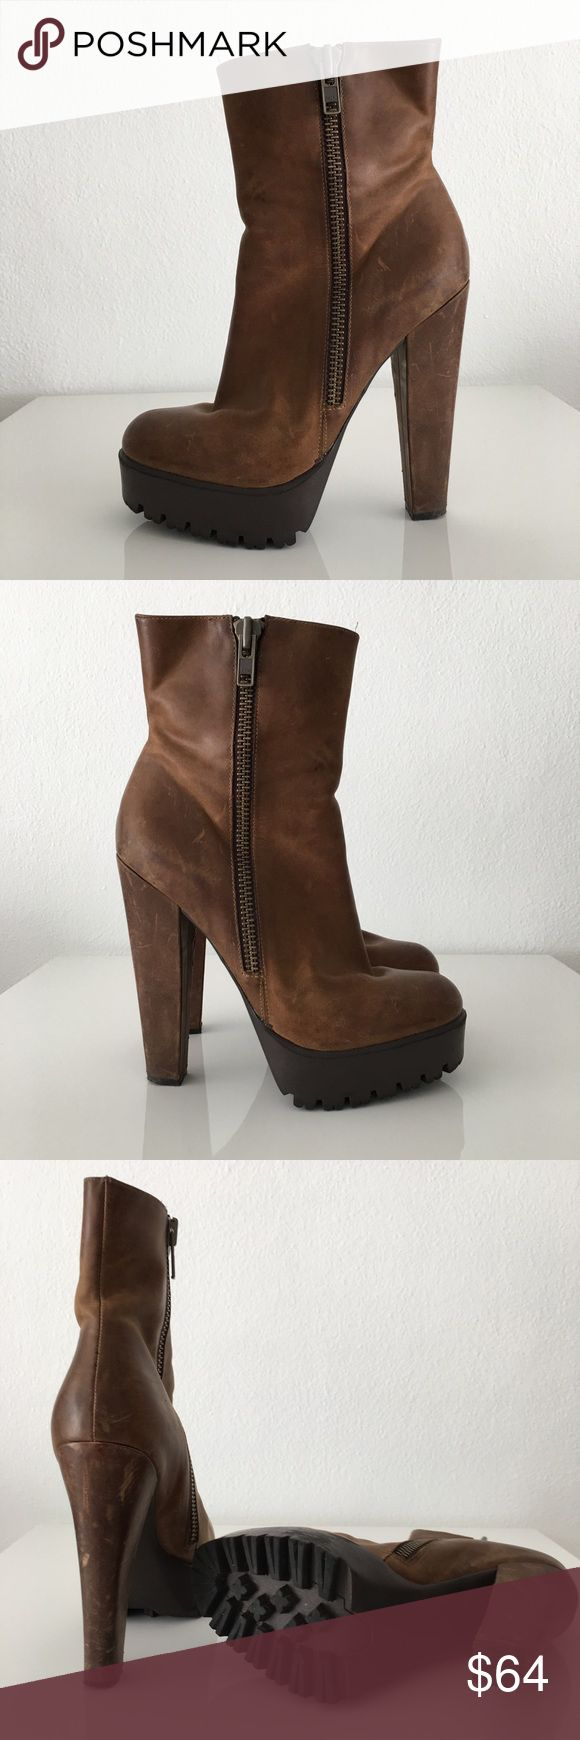 William Rast Brown Leather Ankle Boots These William Rast platform booties give lots of height while keeping your feet comfortable. The Platform gum bottom is perfect for cold weather strolls, and the beautiful and soft brown leather looks expensive and chic. William Rast Shoes Ankle Boots & Booties